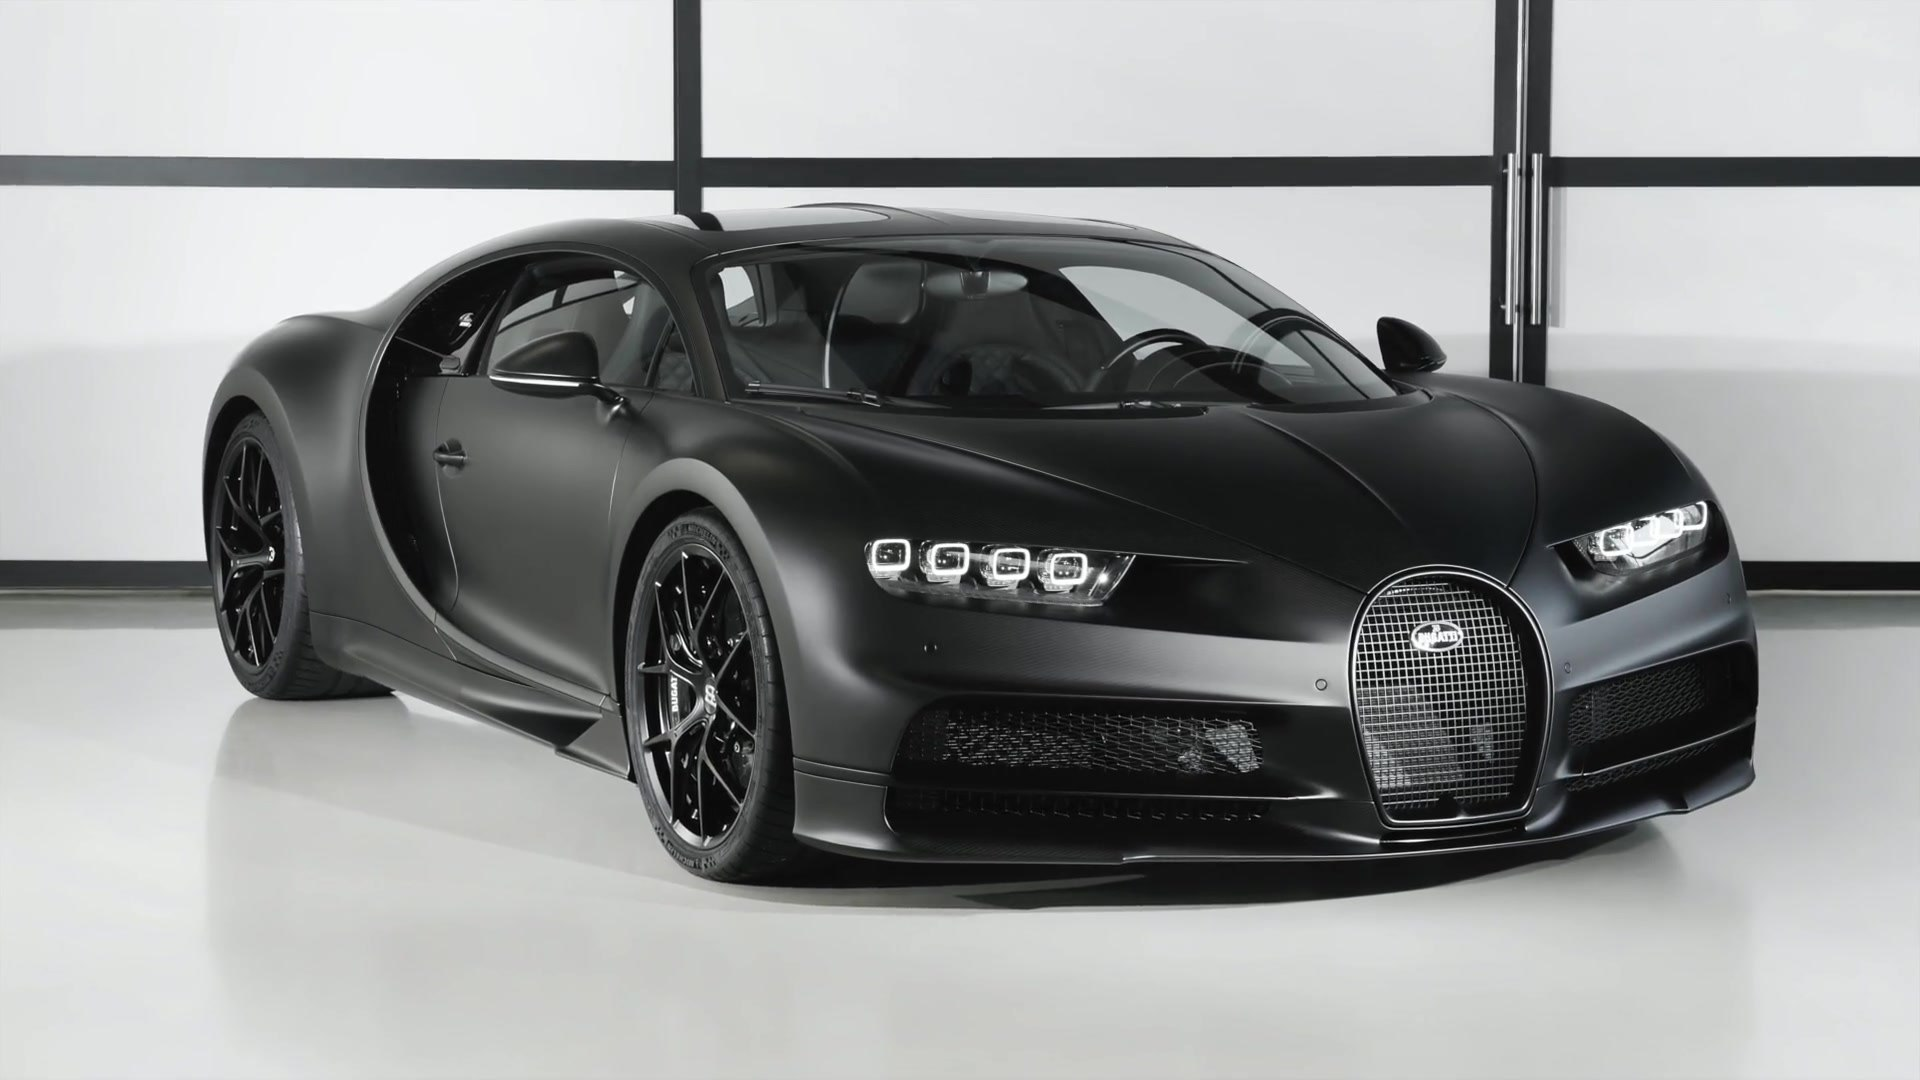 The New Bugatti Chiron Sport Edition Noire Sportive Is Ready For Its Debut Video Dailymotion